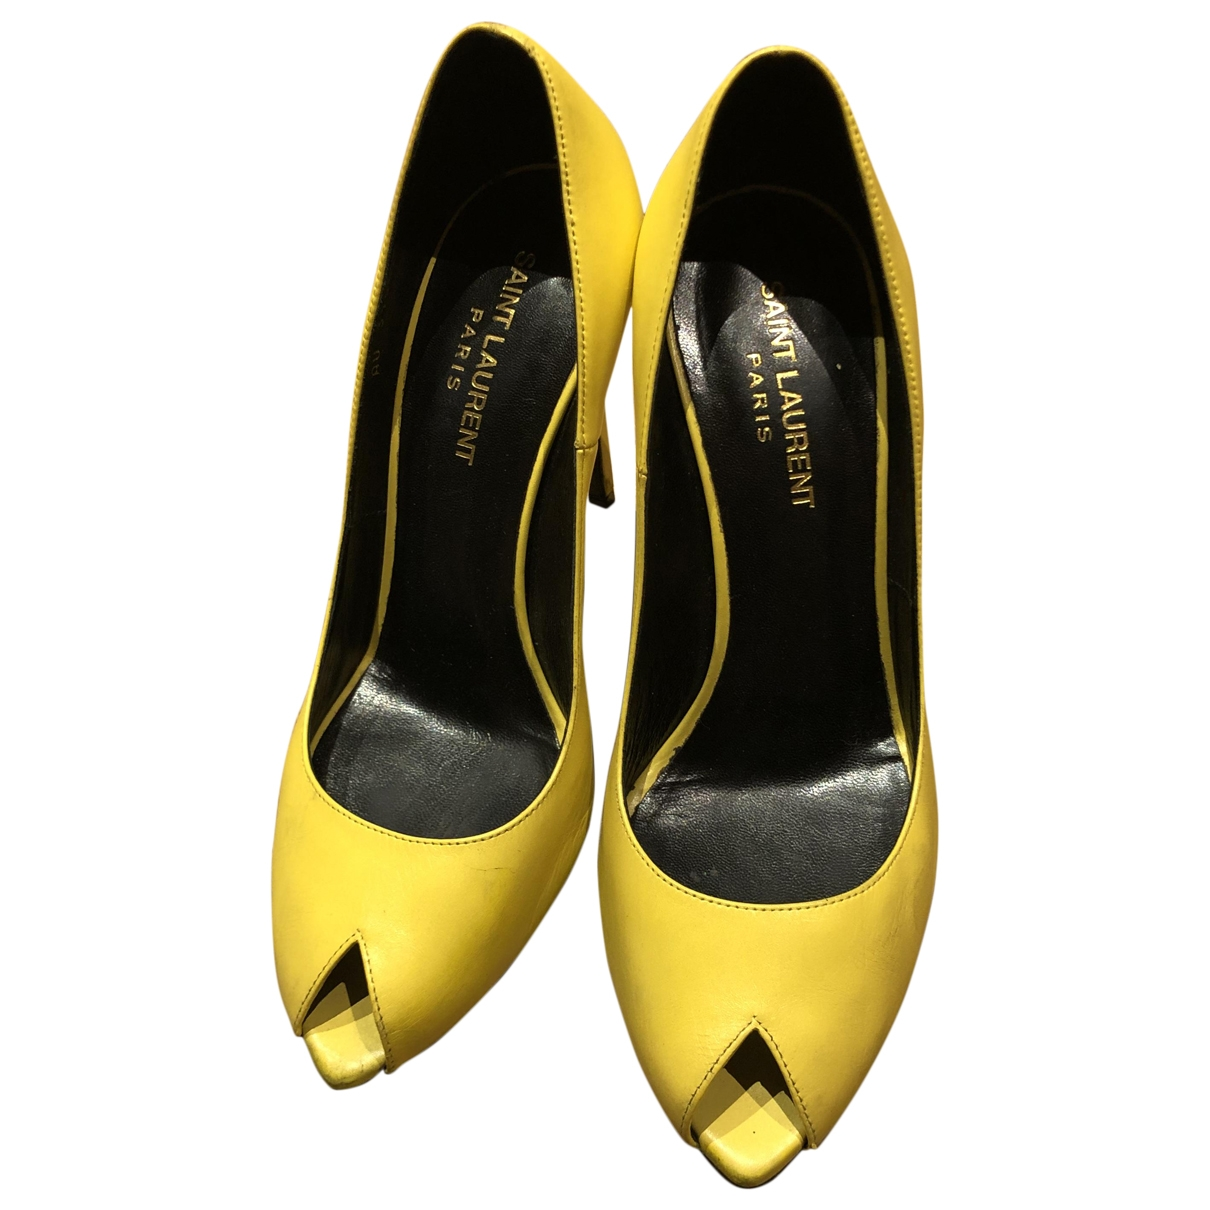 Saint Laurent \N Yellow Leather Heels for Women 38 EU